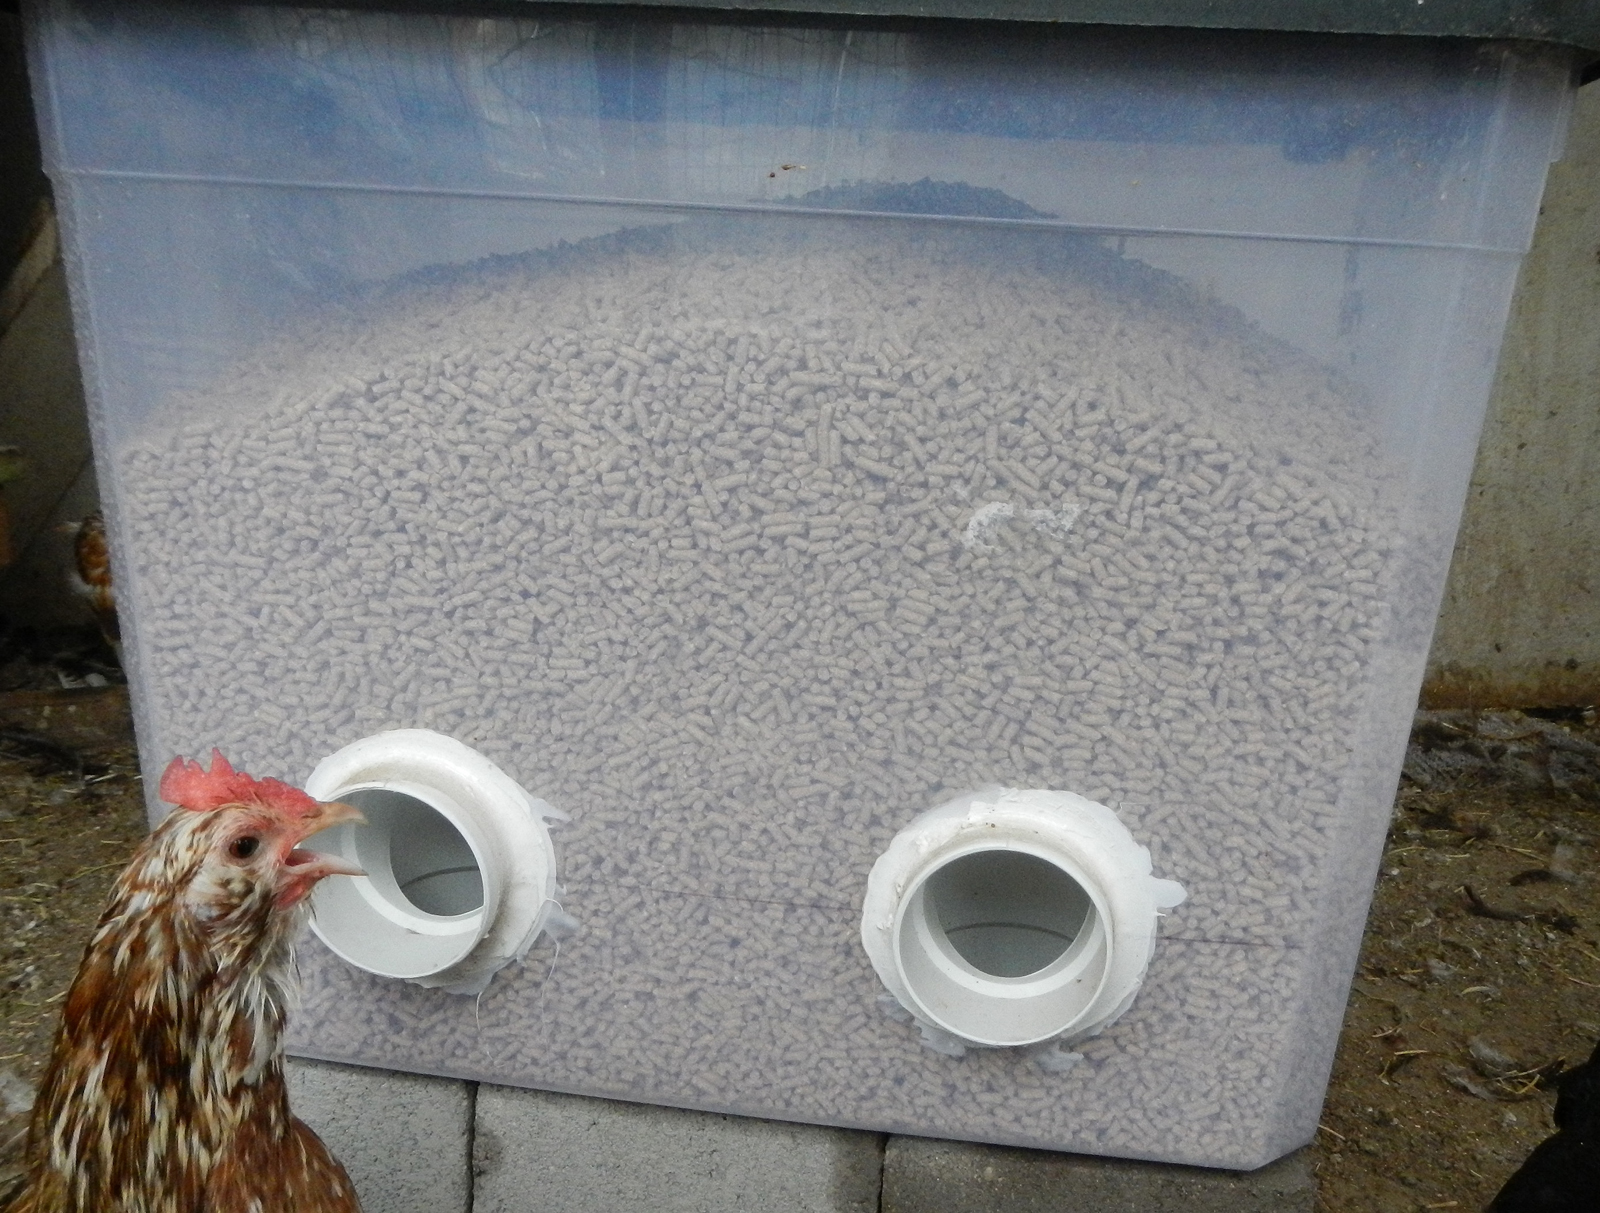 housing o chicks animal sale feeder treadle matic for feed appletons and